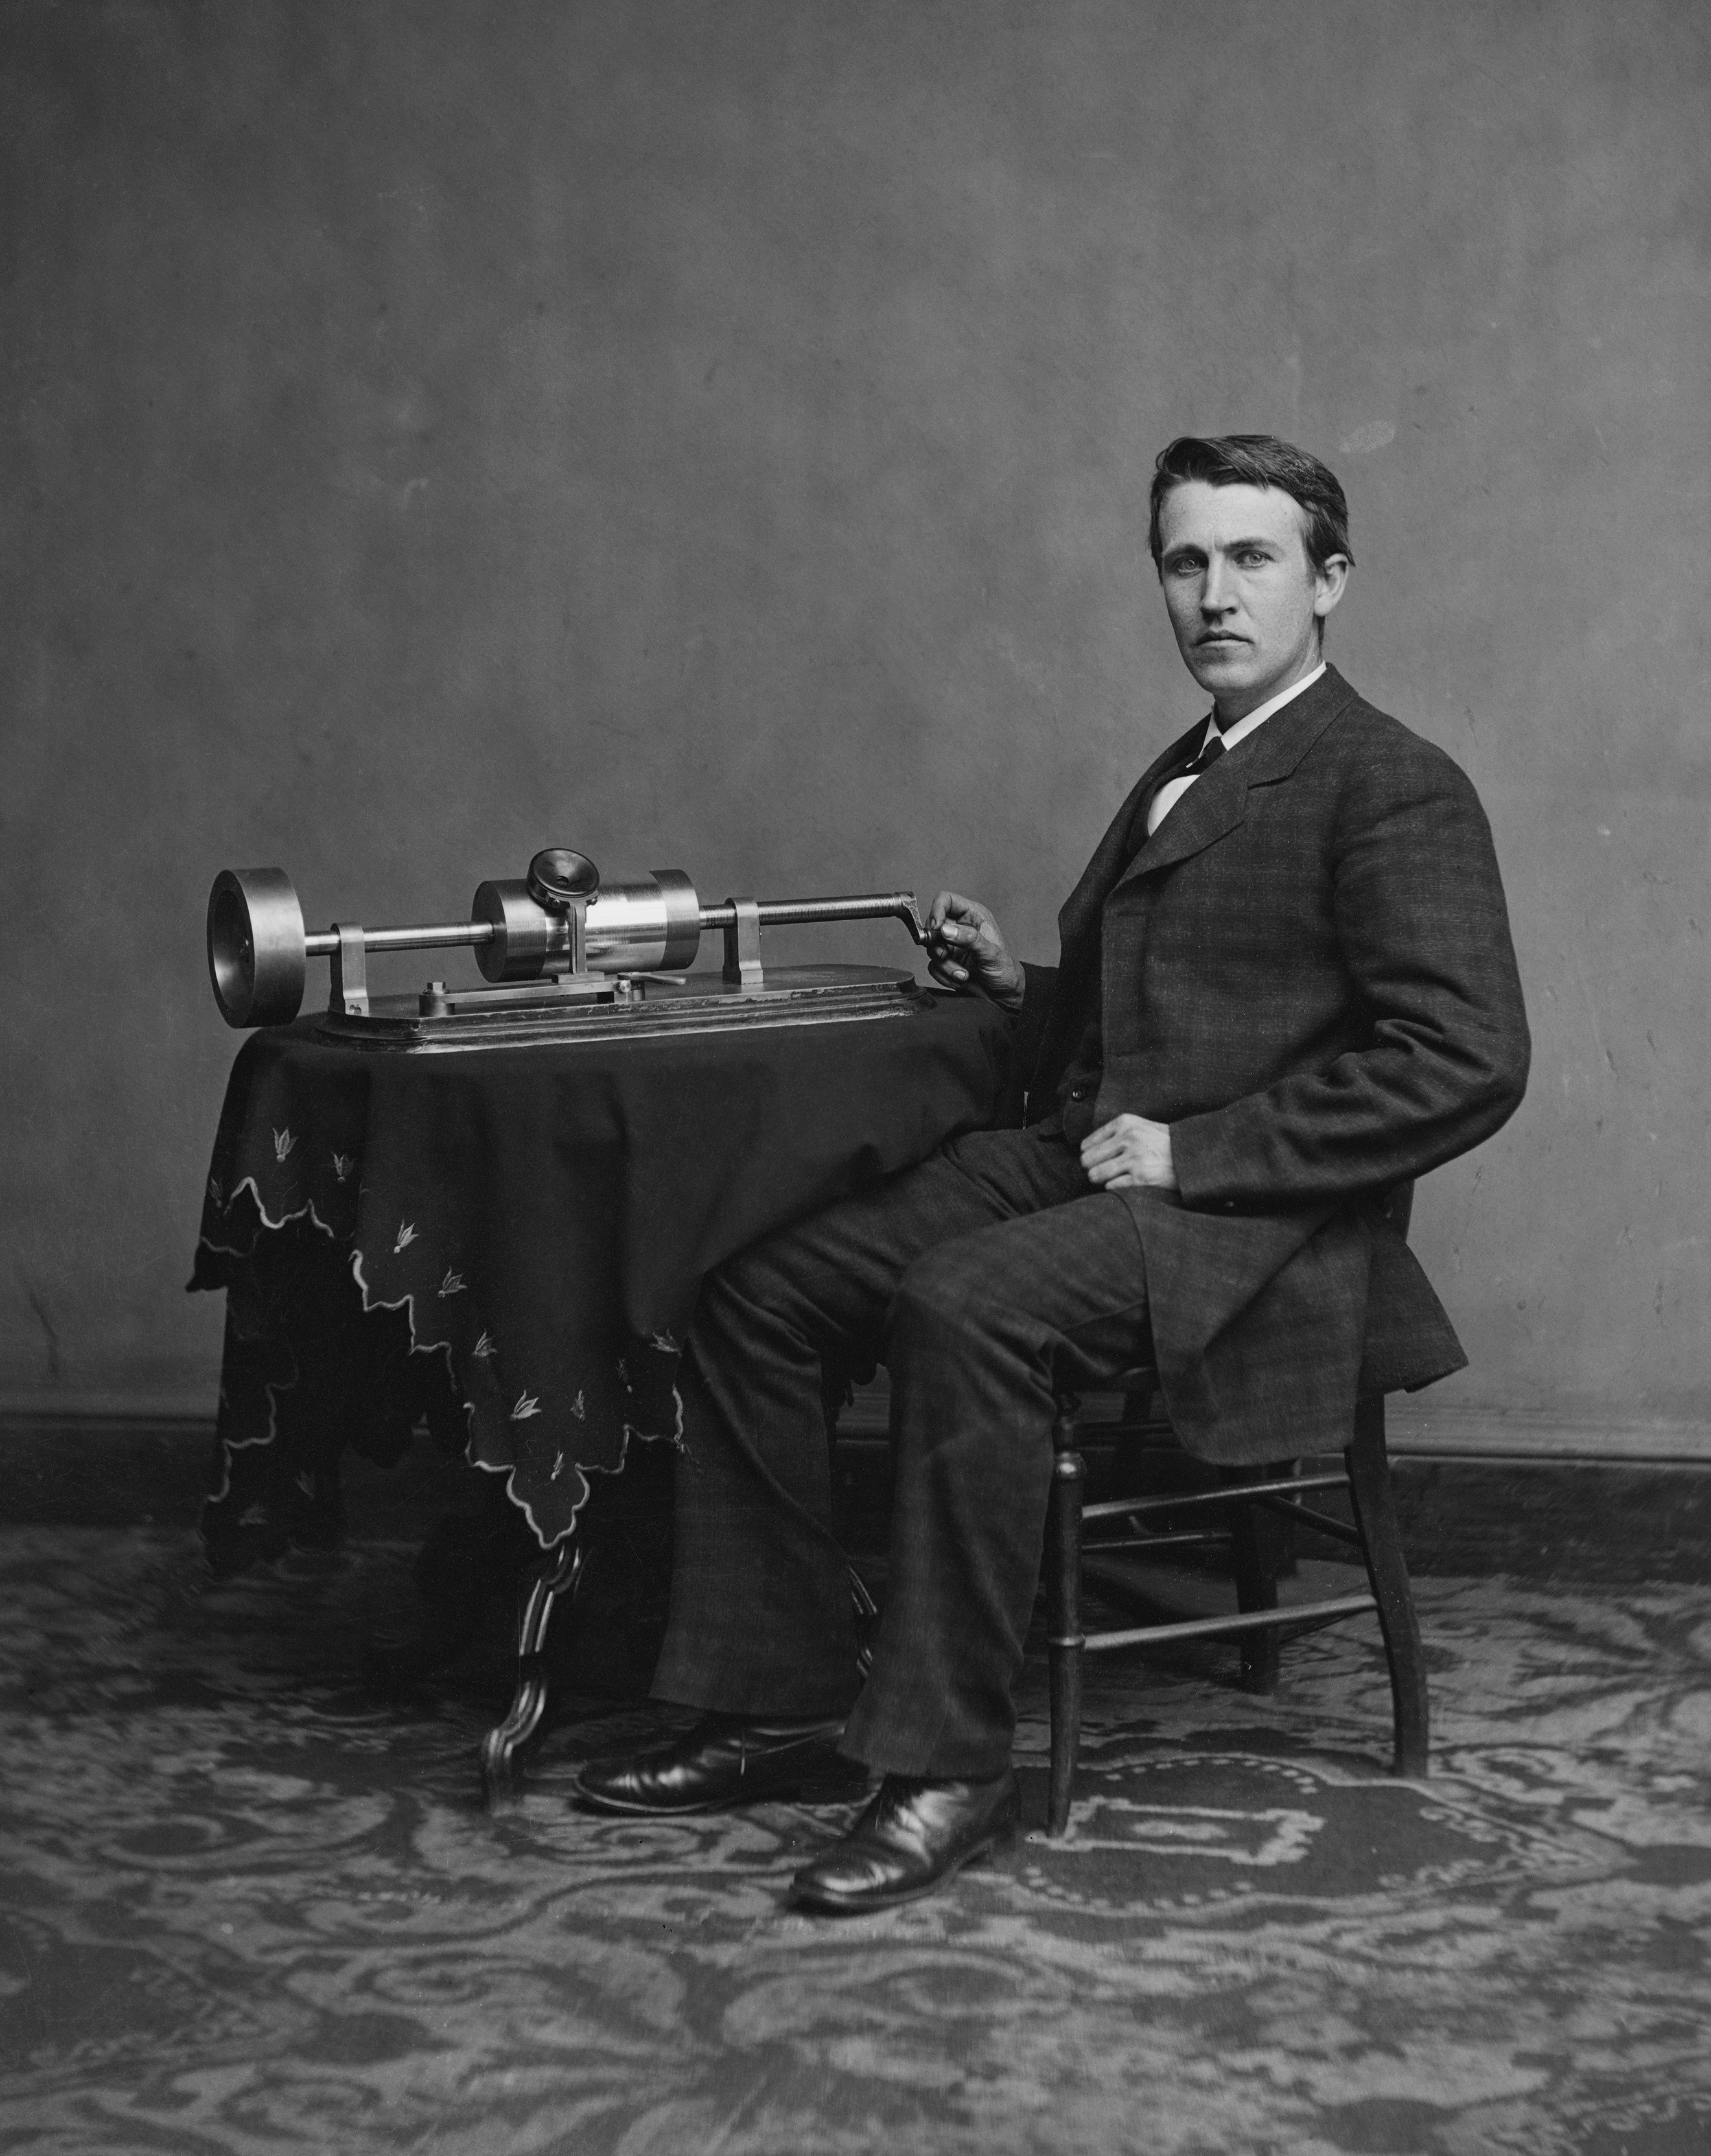 Edison_and_phonograph_edit1.jpg  From the Phonograph to Spotify: The History of Streaming Music Edison and phonograph edit1